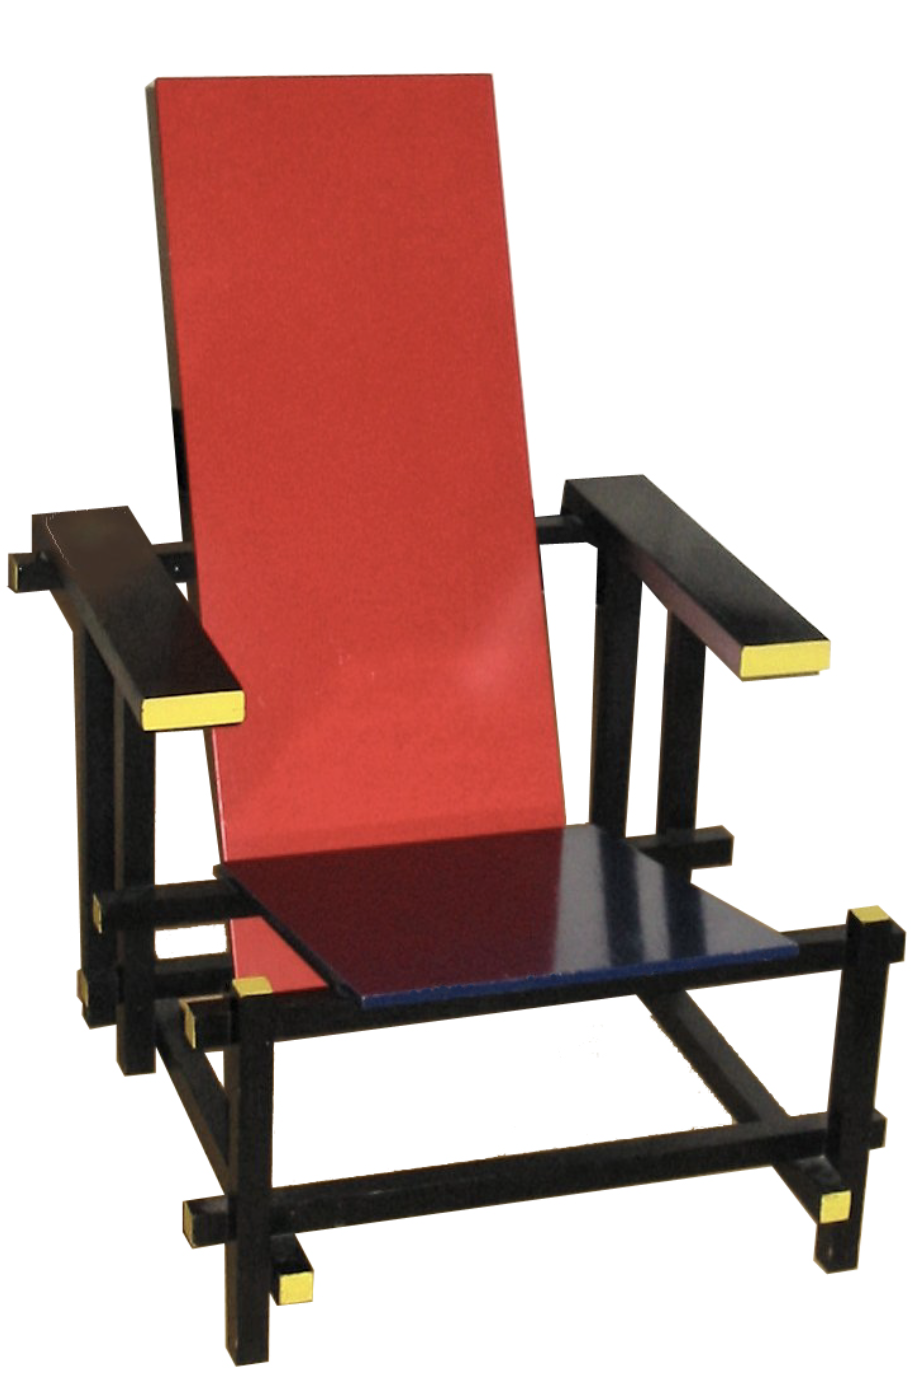 photograph of a red chair with black arms and legs.